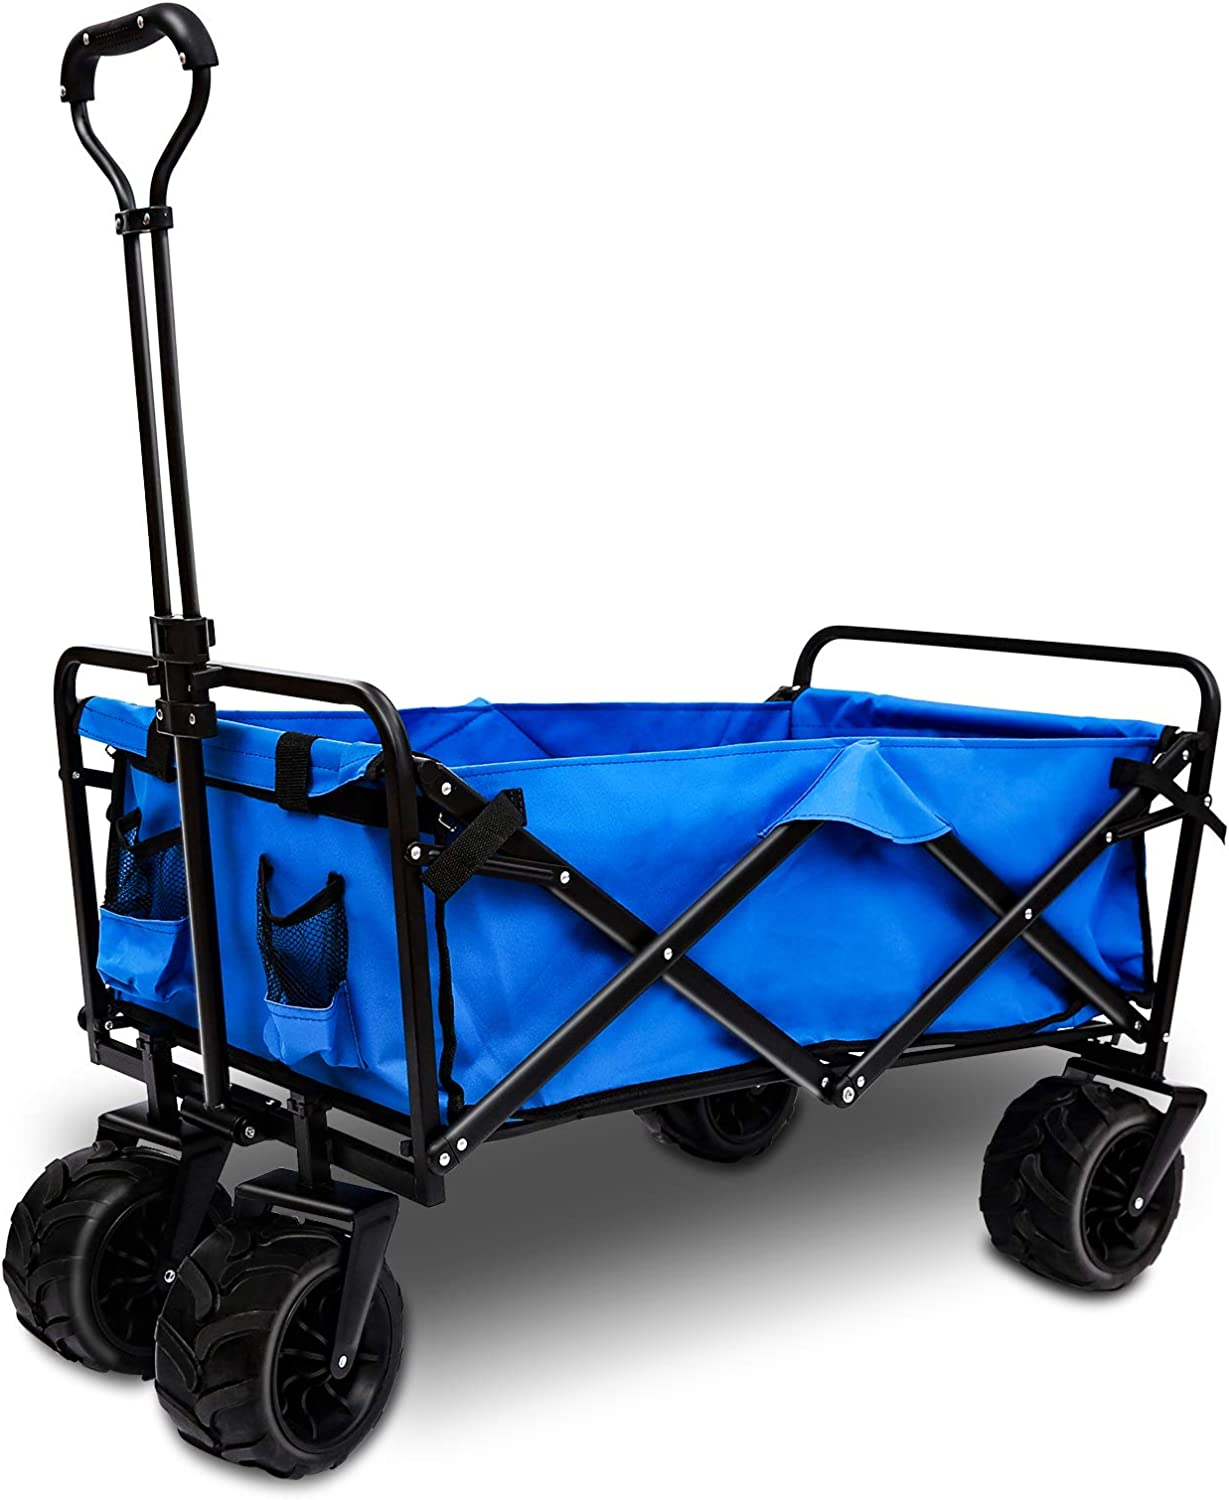 AUTENPOO Heavy Duty Utility Wagon Outdoor, Collapsible Folding Garden Carts with Adjustable Push and Pull Handle Portable Wagon Cart with Veer Wheel for Yard, Beach, Camping and Shopping